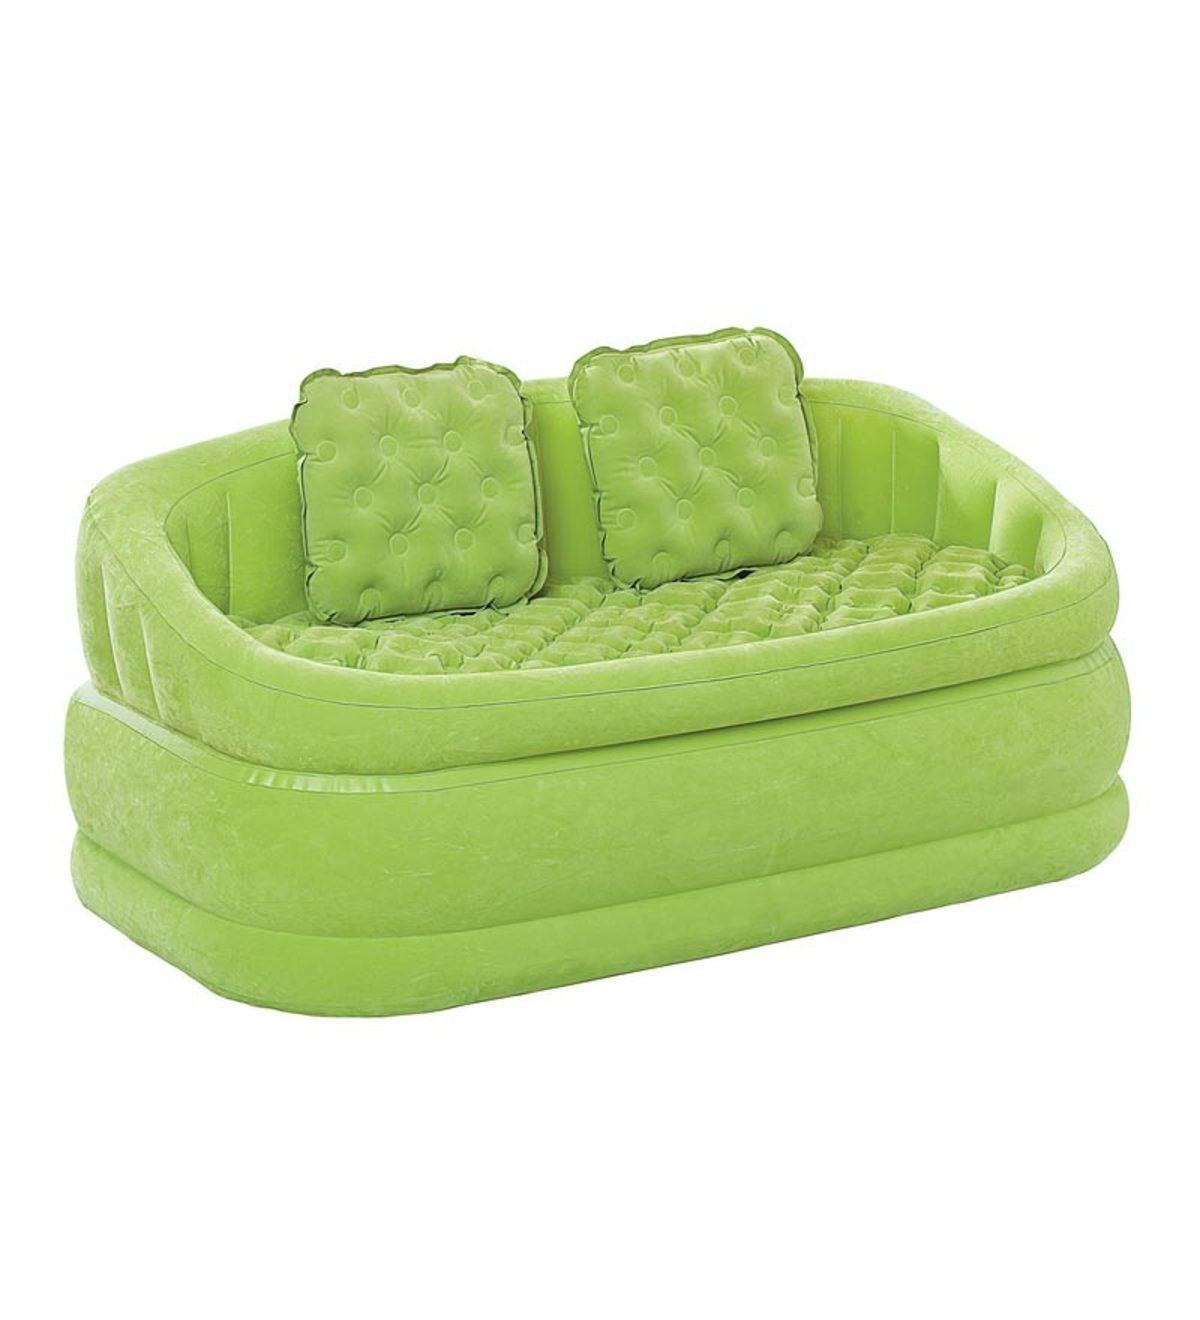 Top Image Plush Inflatable Cafe Chair